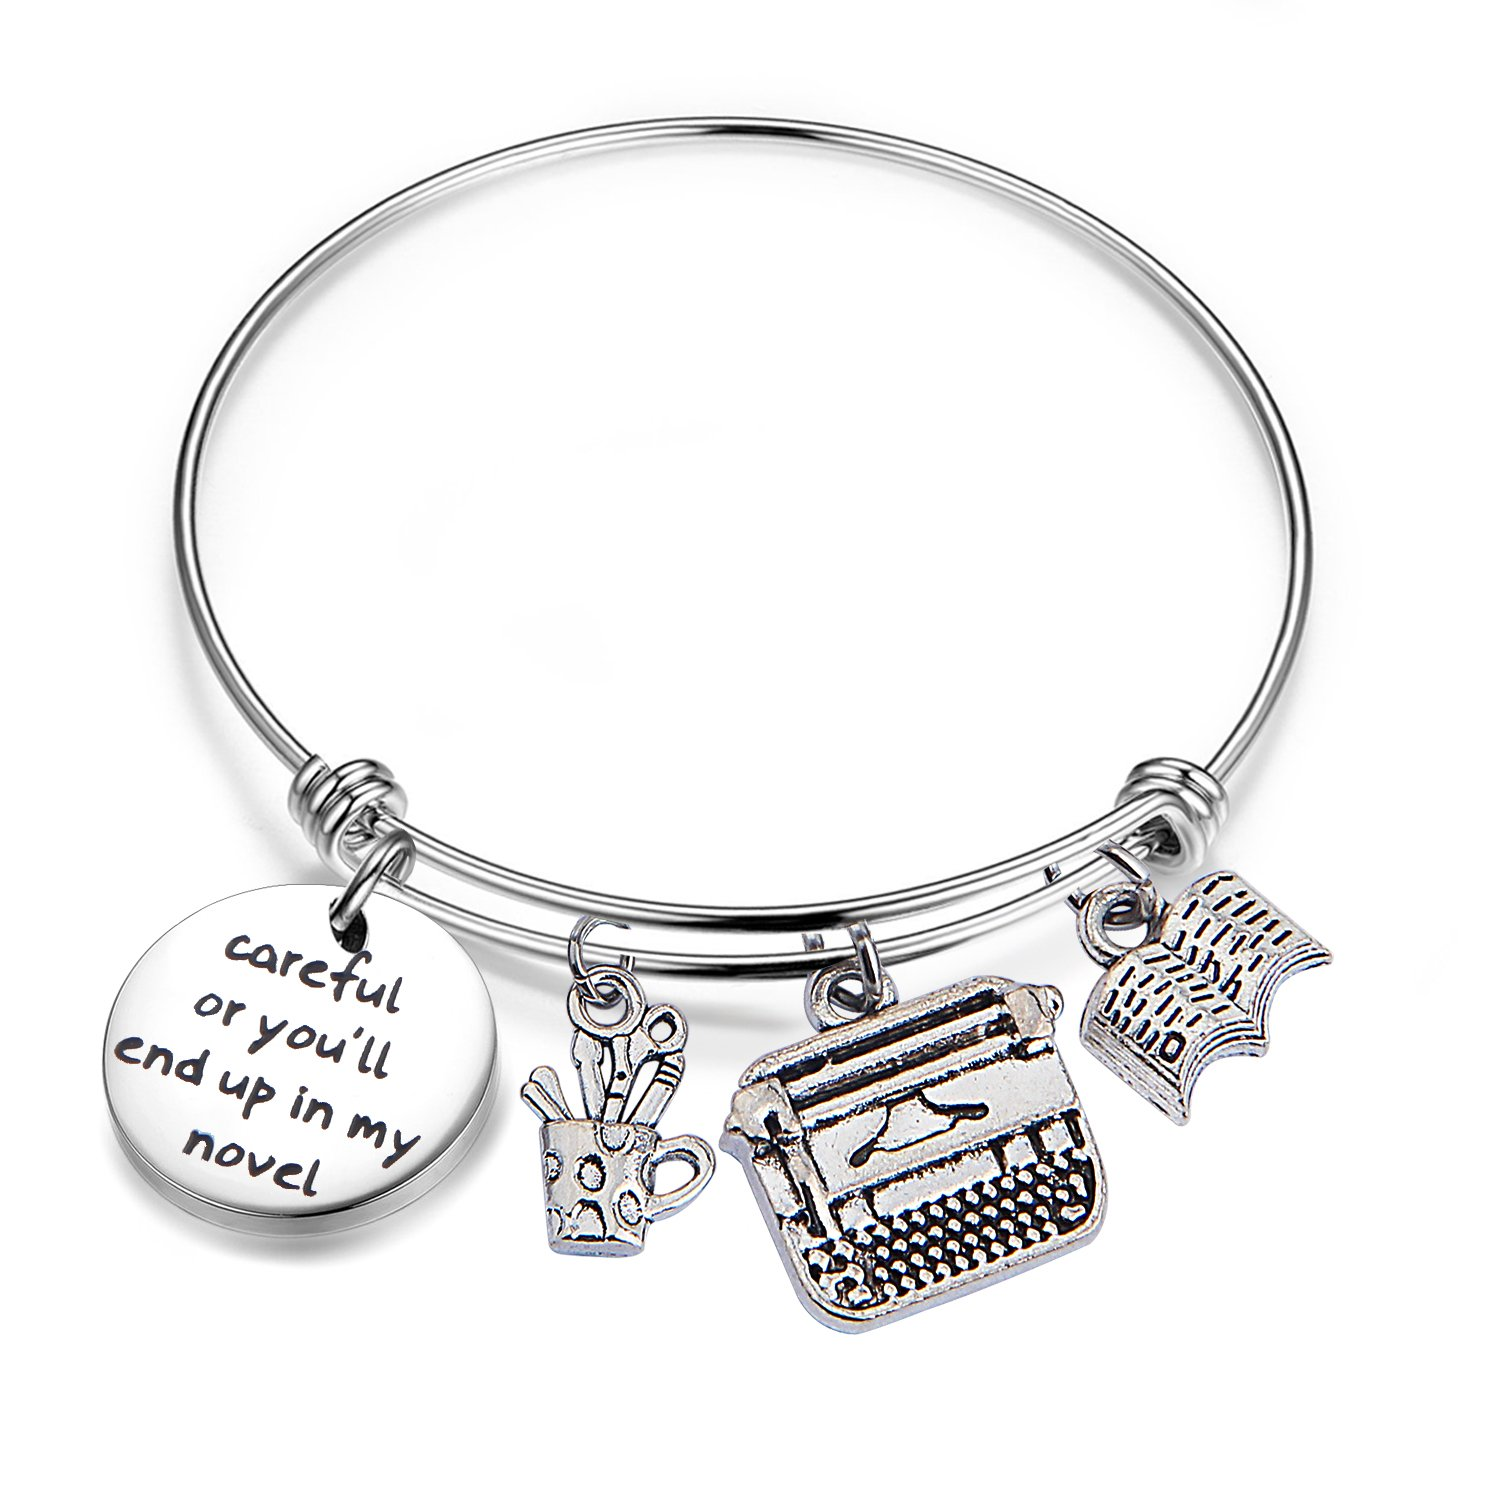 Gzrlyf Writer Bracelet Author Bracelet Writer Gift Novelist Gift Careful Or Youll End Up In My Novel Jewelry Writing Gift Author Jewelry (Writer bracelet) by Gzrlyf (Image #1)